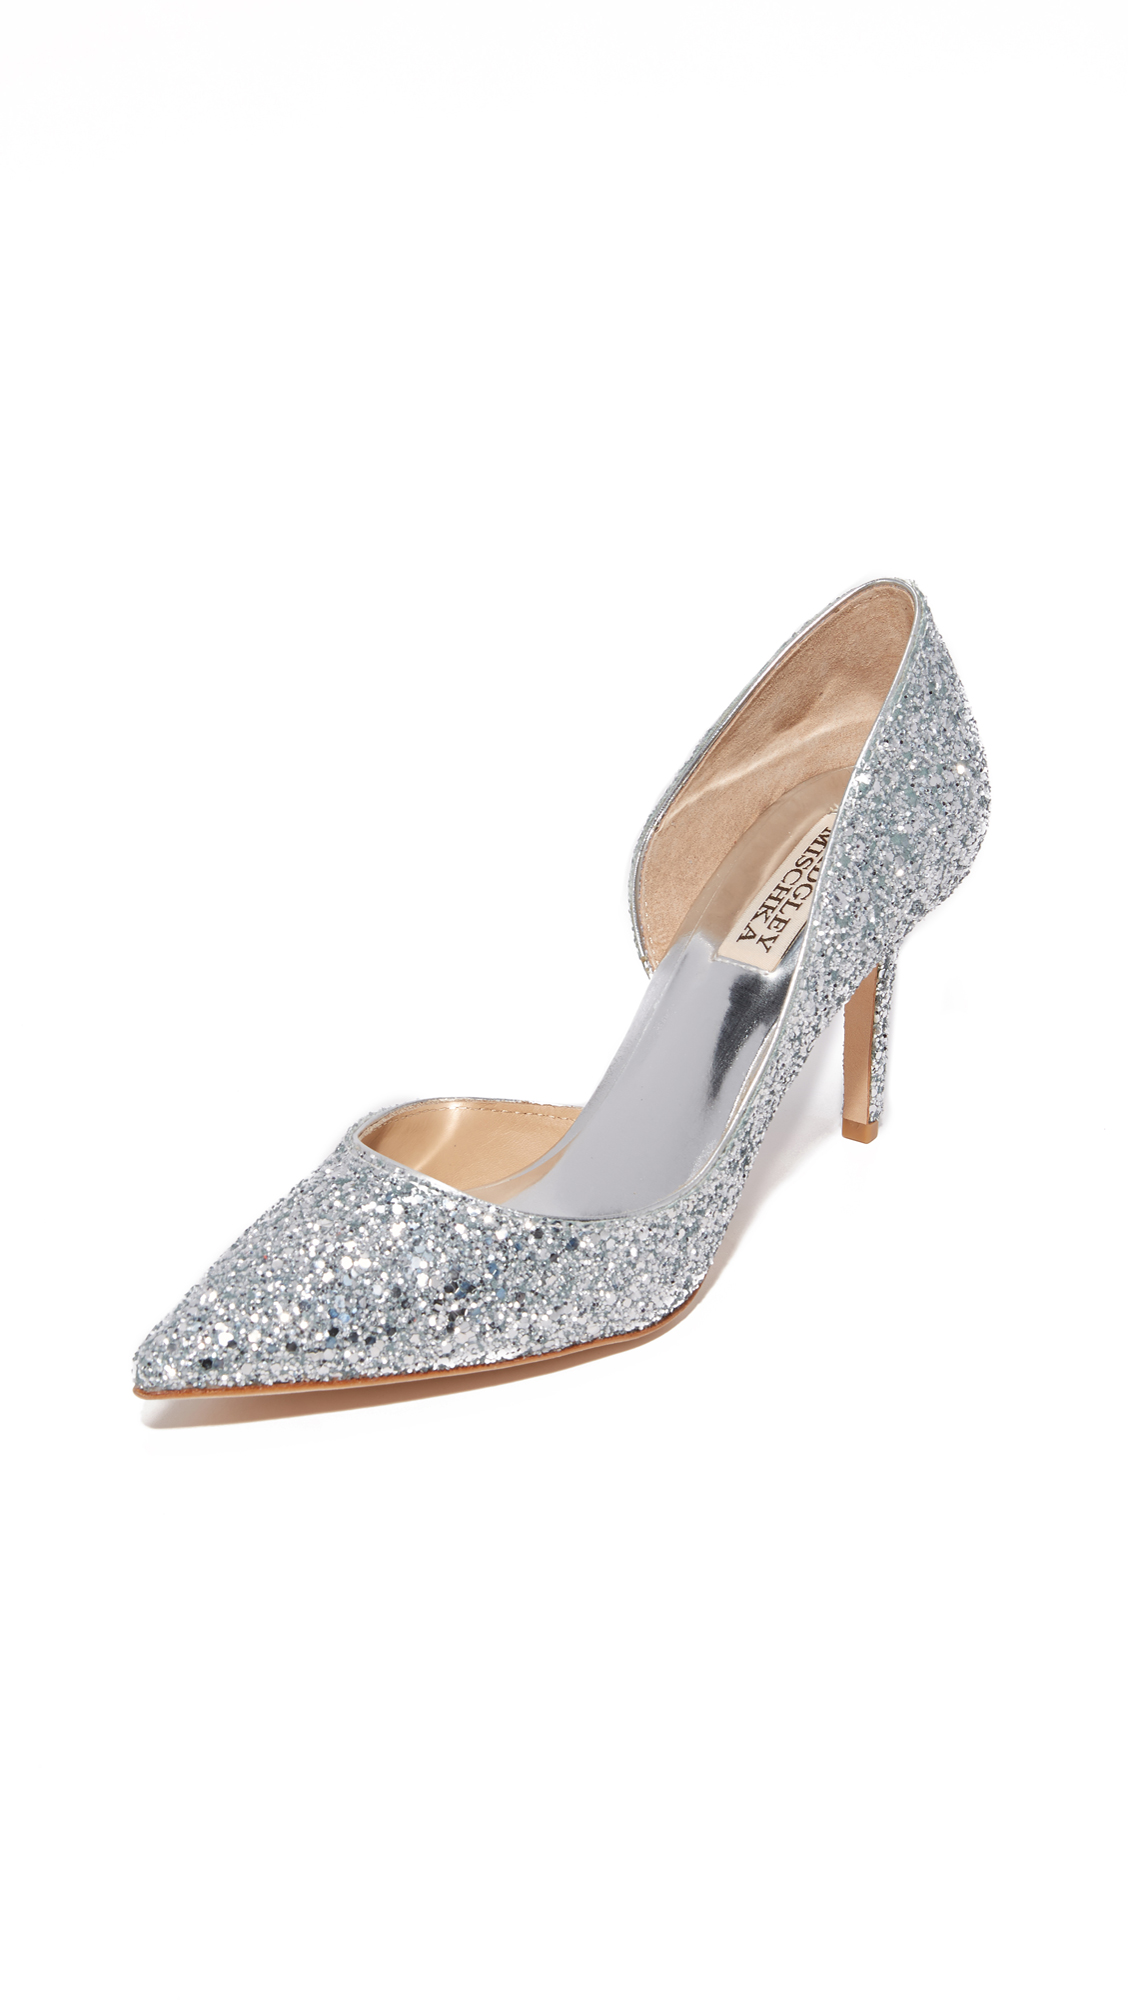 Badgley Mischka Daisy Glitter Pumps - Silver